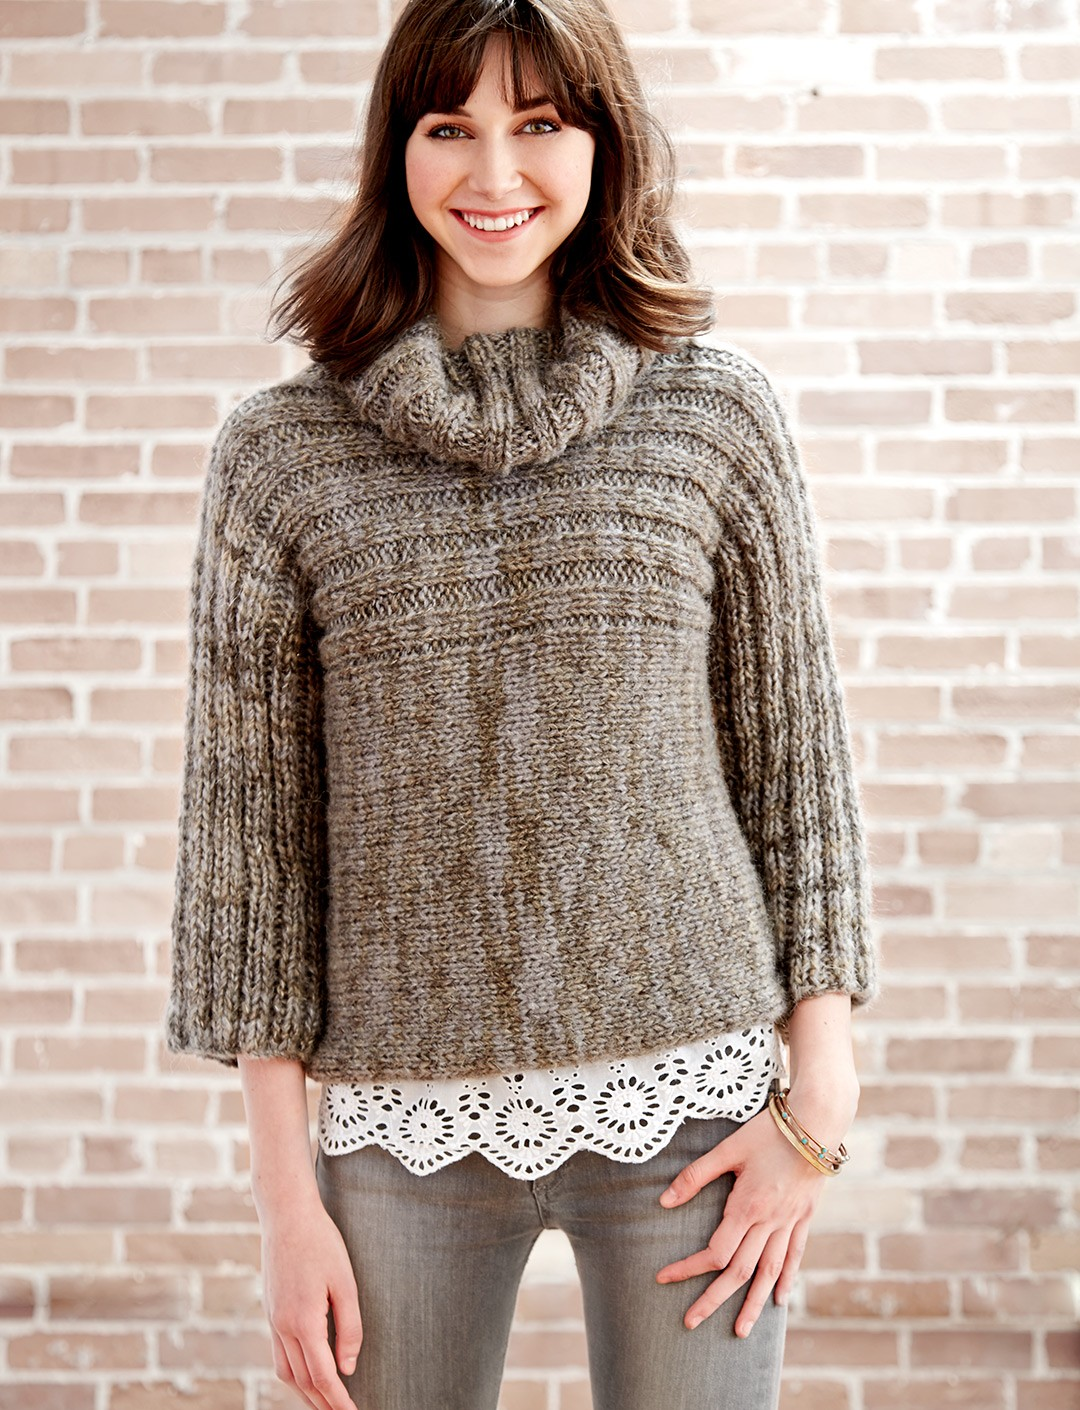 Free Knitting Pattern For Ladies Cowl Neck Sweater : Patons Misty Morning Cowl Neck, Knit Pattern Yarnspirations